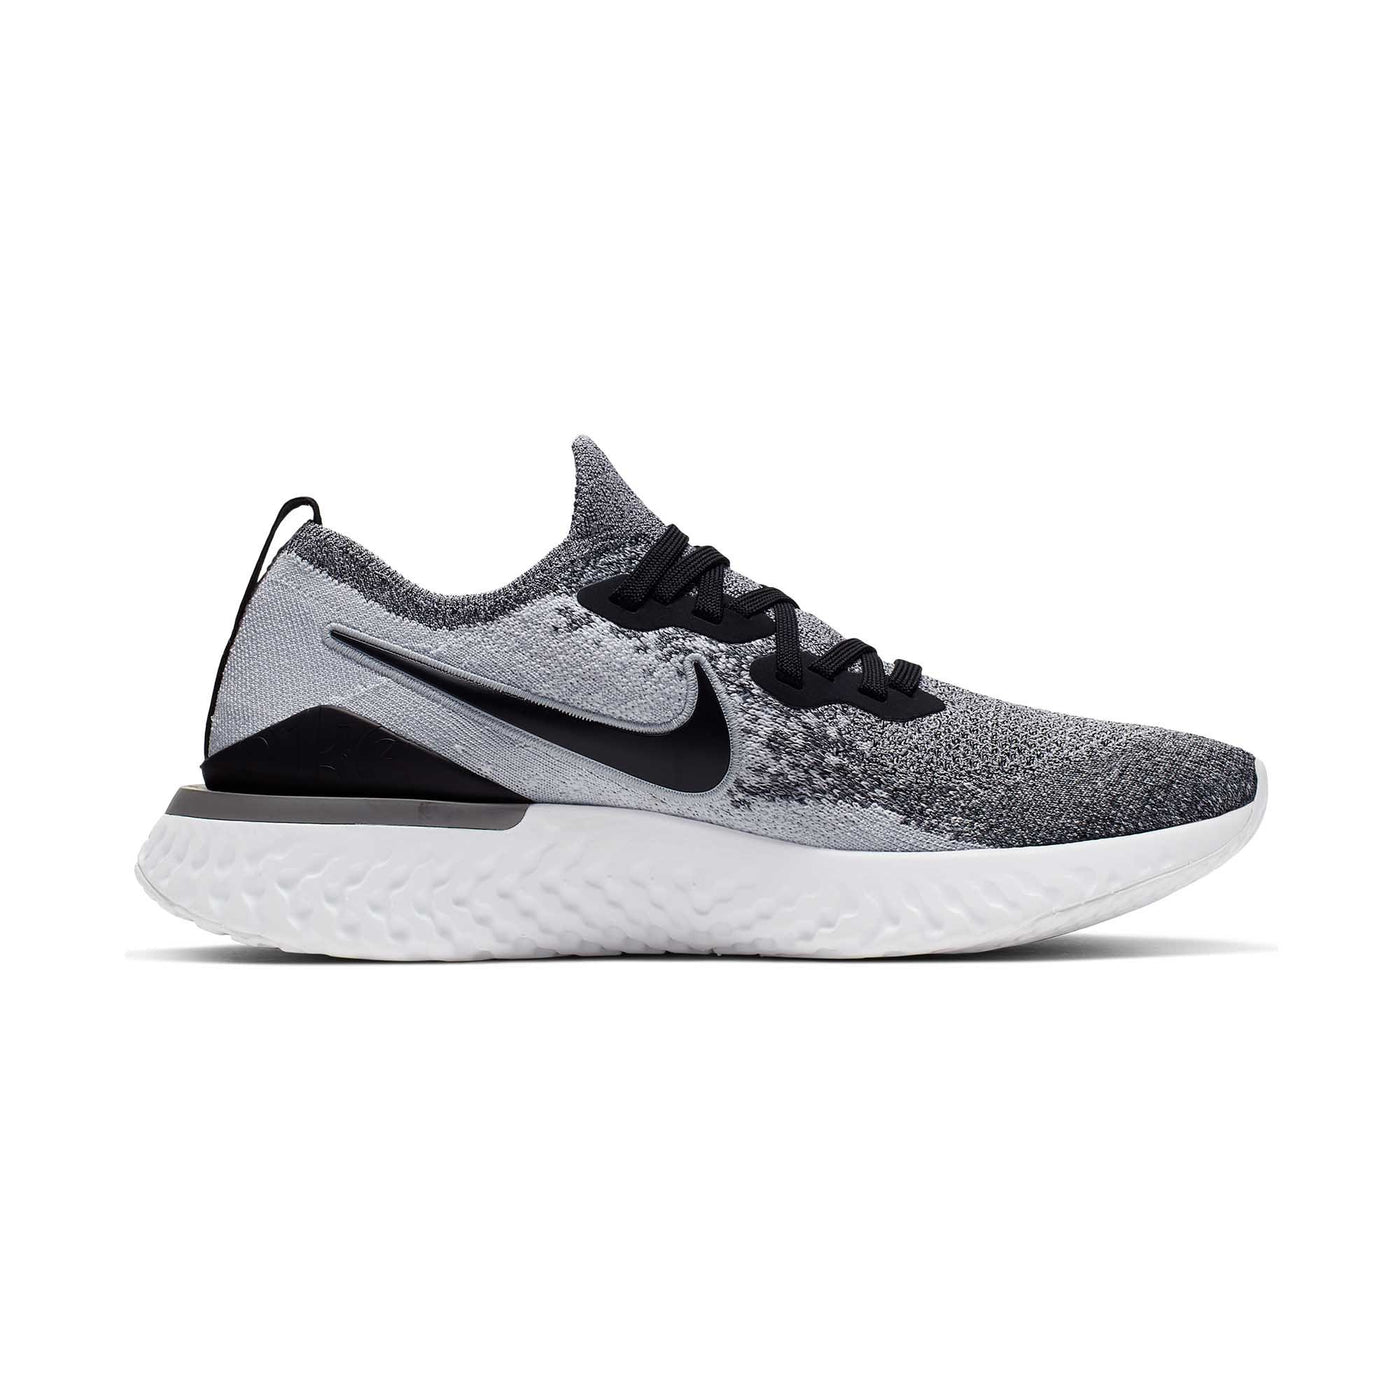 5ff0b6c31c Women Epic React Flyknit 2 Running Shoes